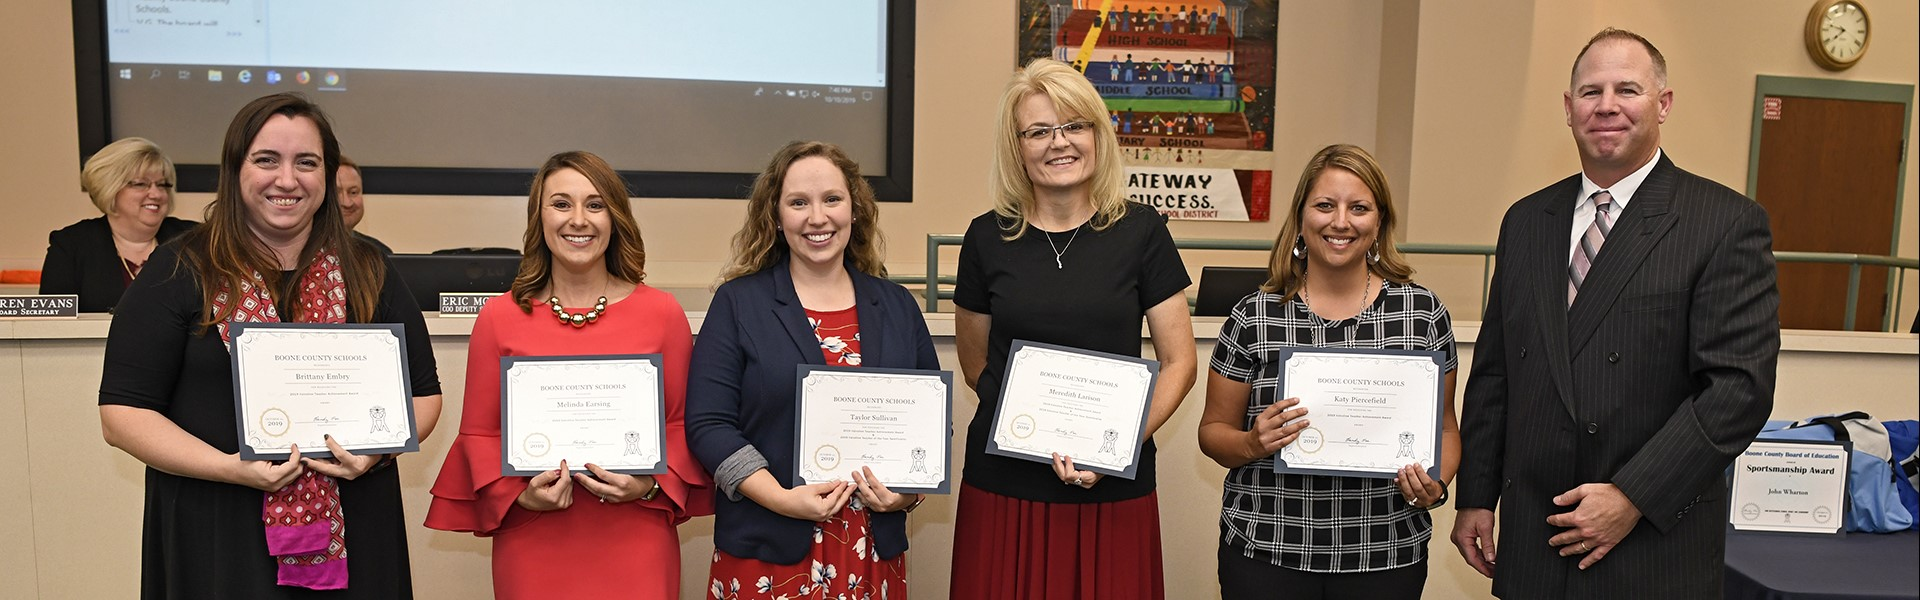 Teacher of the Year nominees 10/19